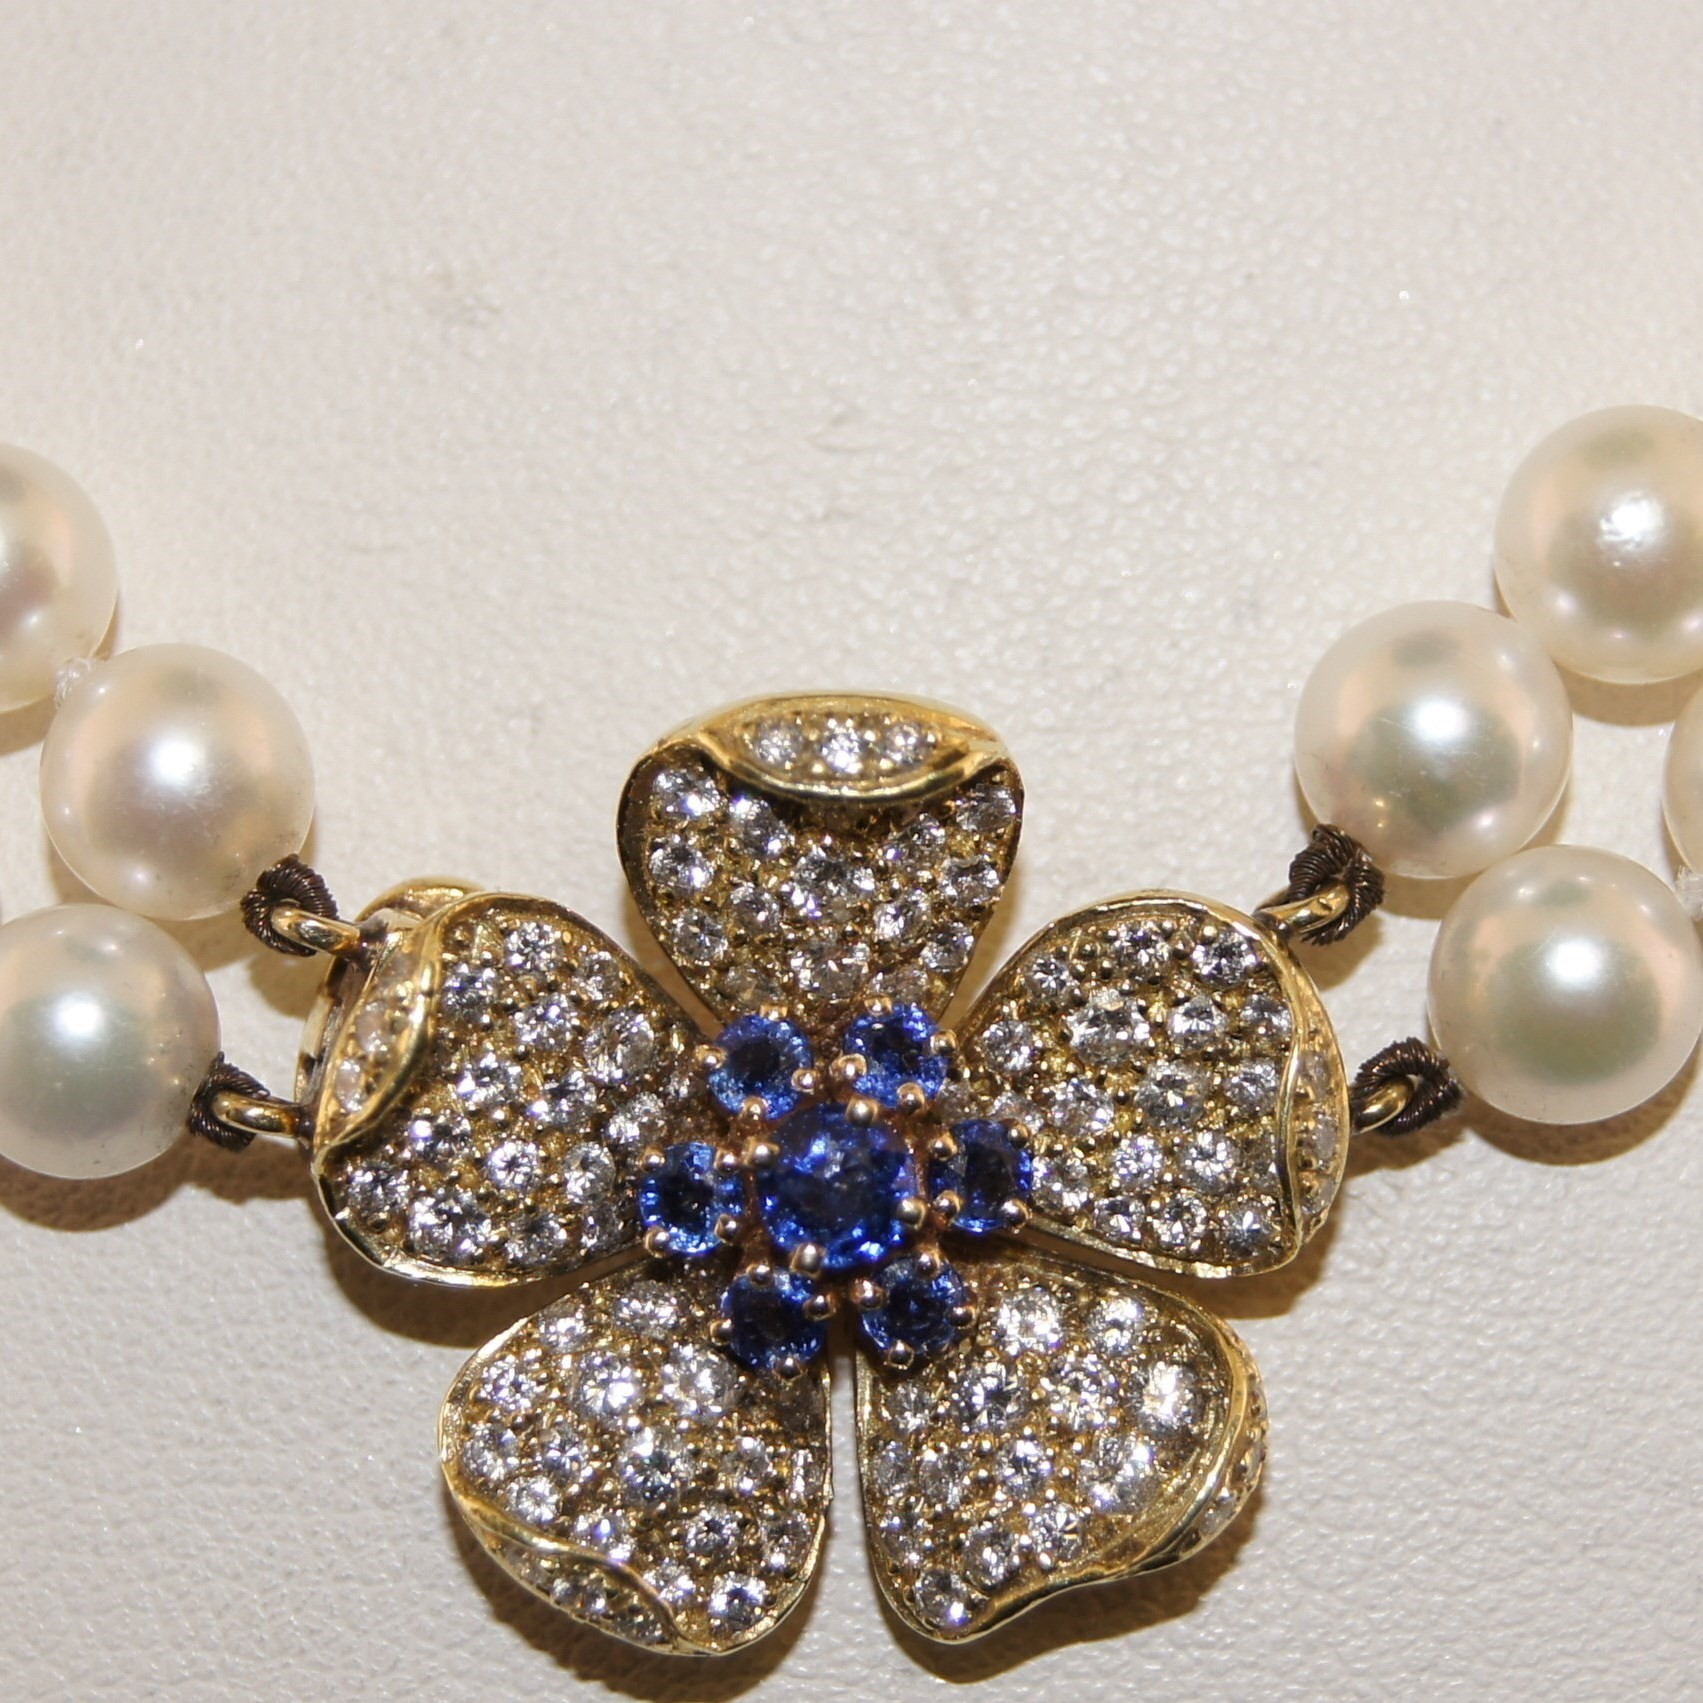 18 Karat Yellow Gold Diamond, Sapphire and Pearl Necklace.